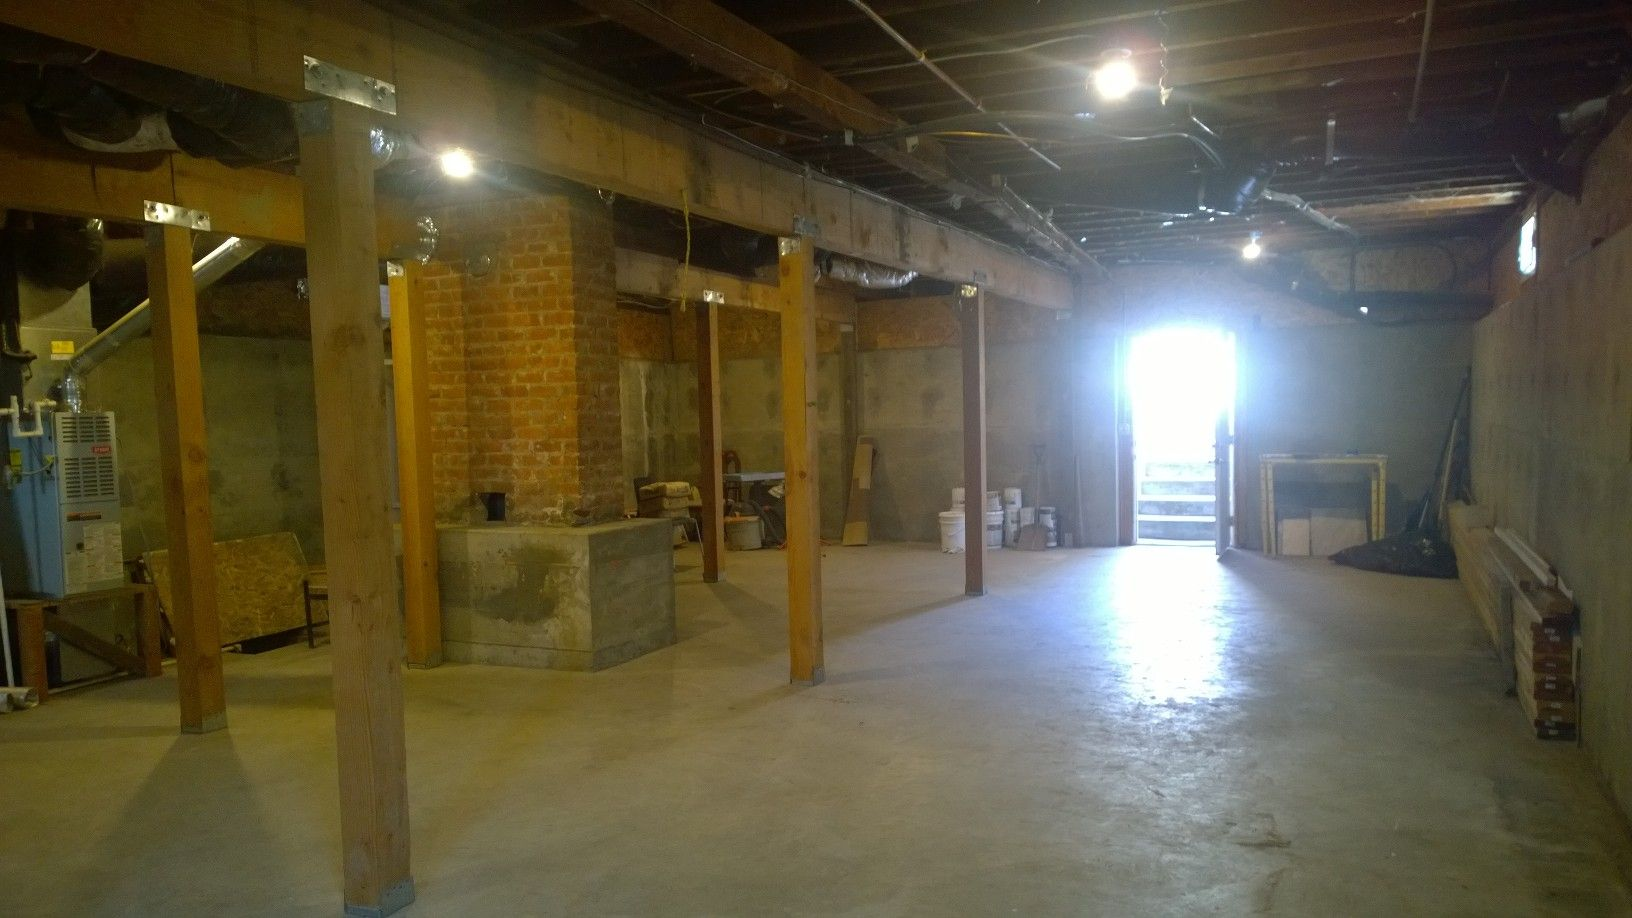 Full basement with exposed ceilings exposed ceilings